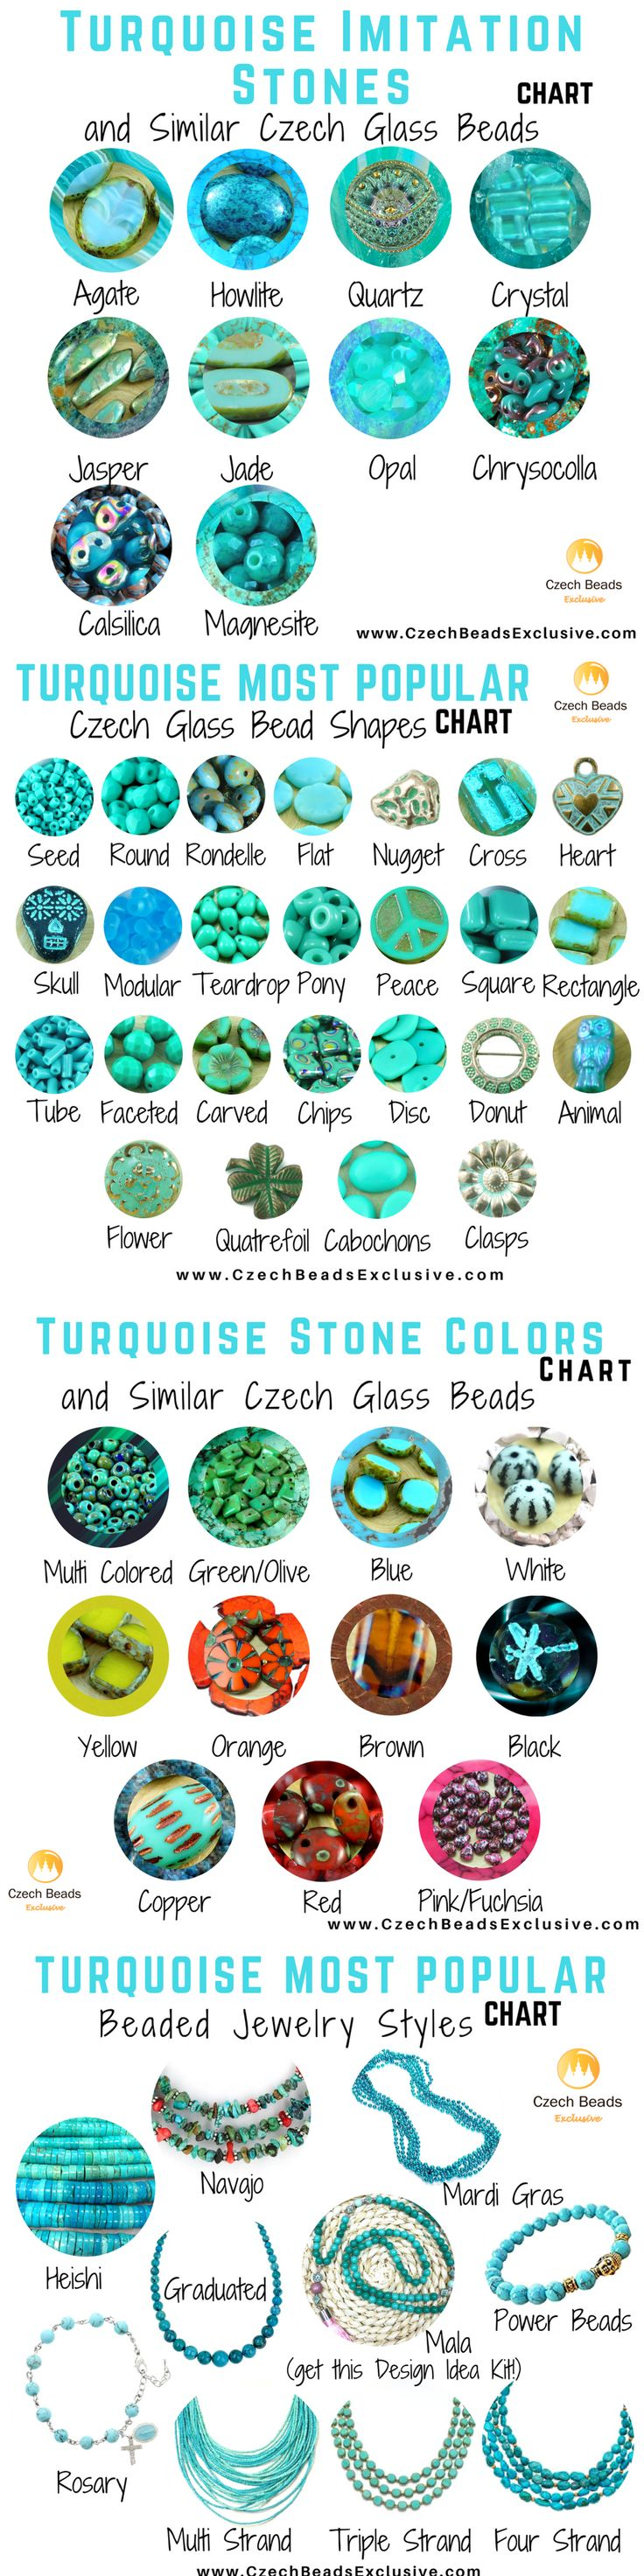 Turquoise Stone Guide: History, Popular Sizes, Colors, Imitation Gemstones, Shapes, Jewelry Styles and Similar Czech Beads | SAVE it! | CzechBeadsExclusive.com #czechbeadsexclusive #czechbeads